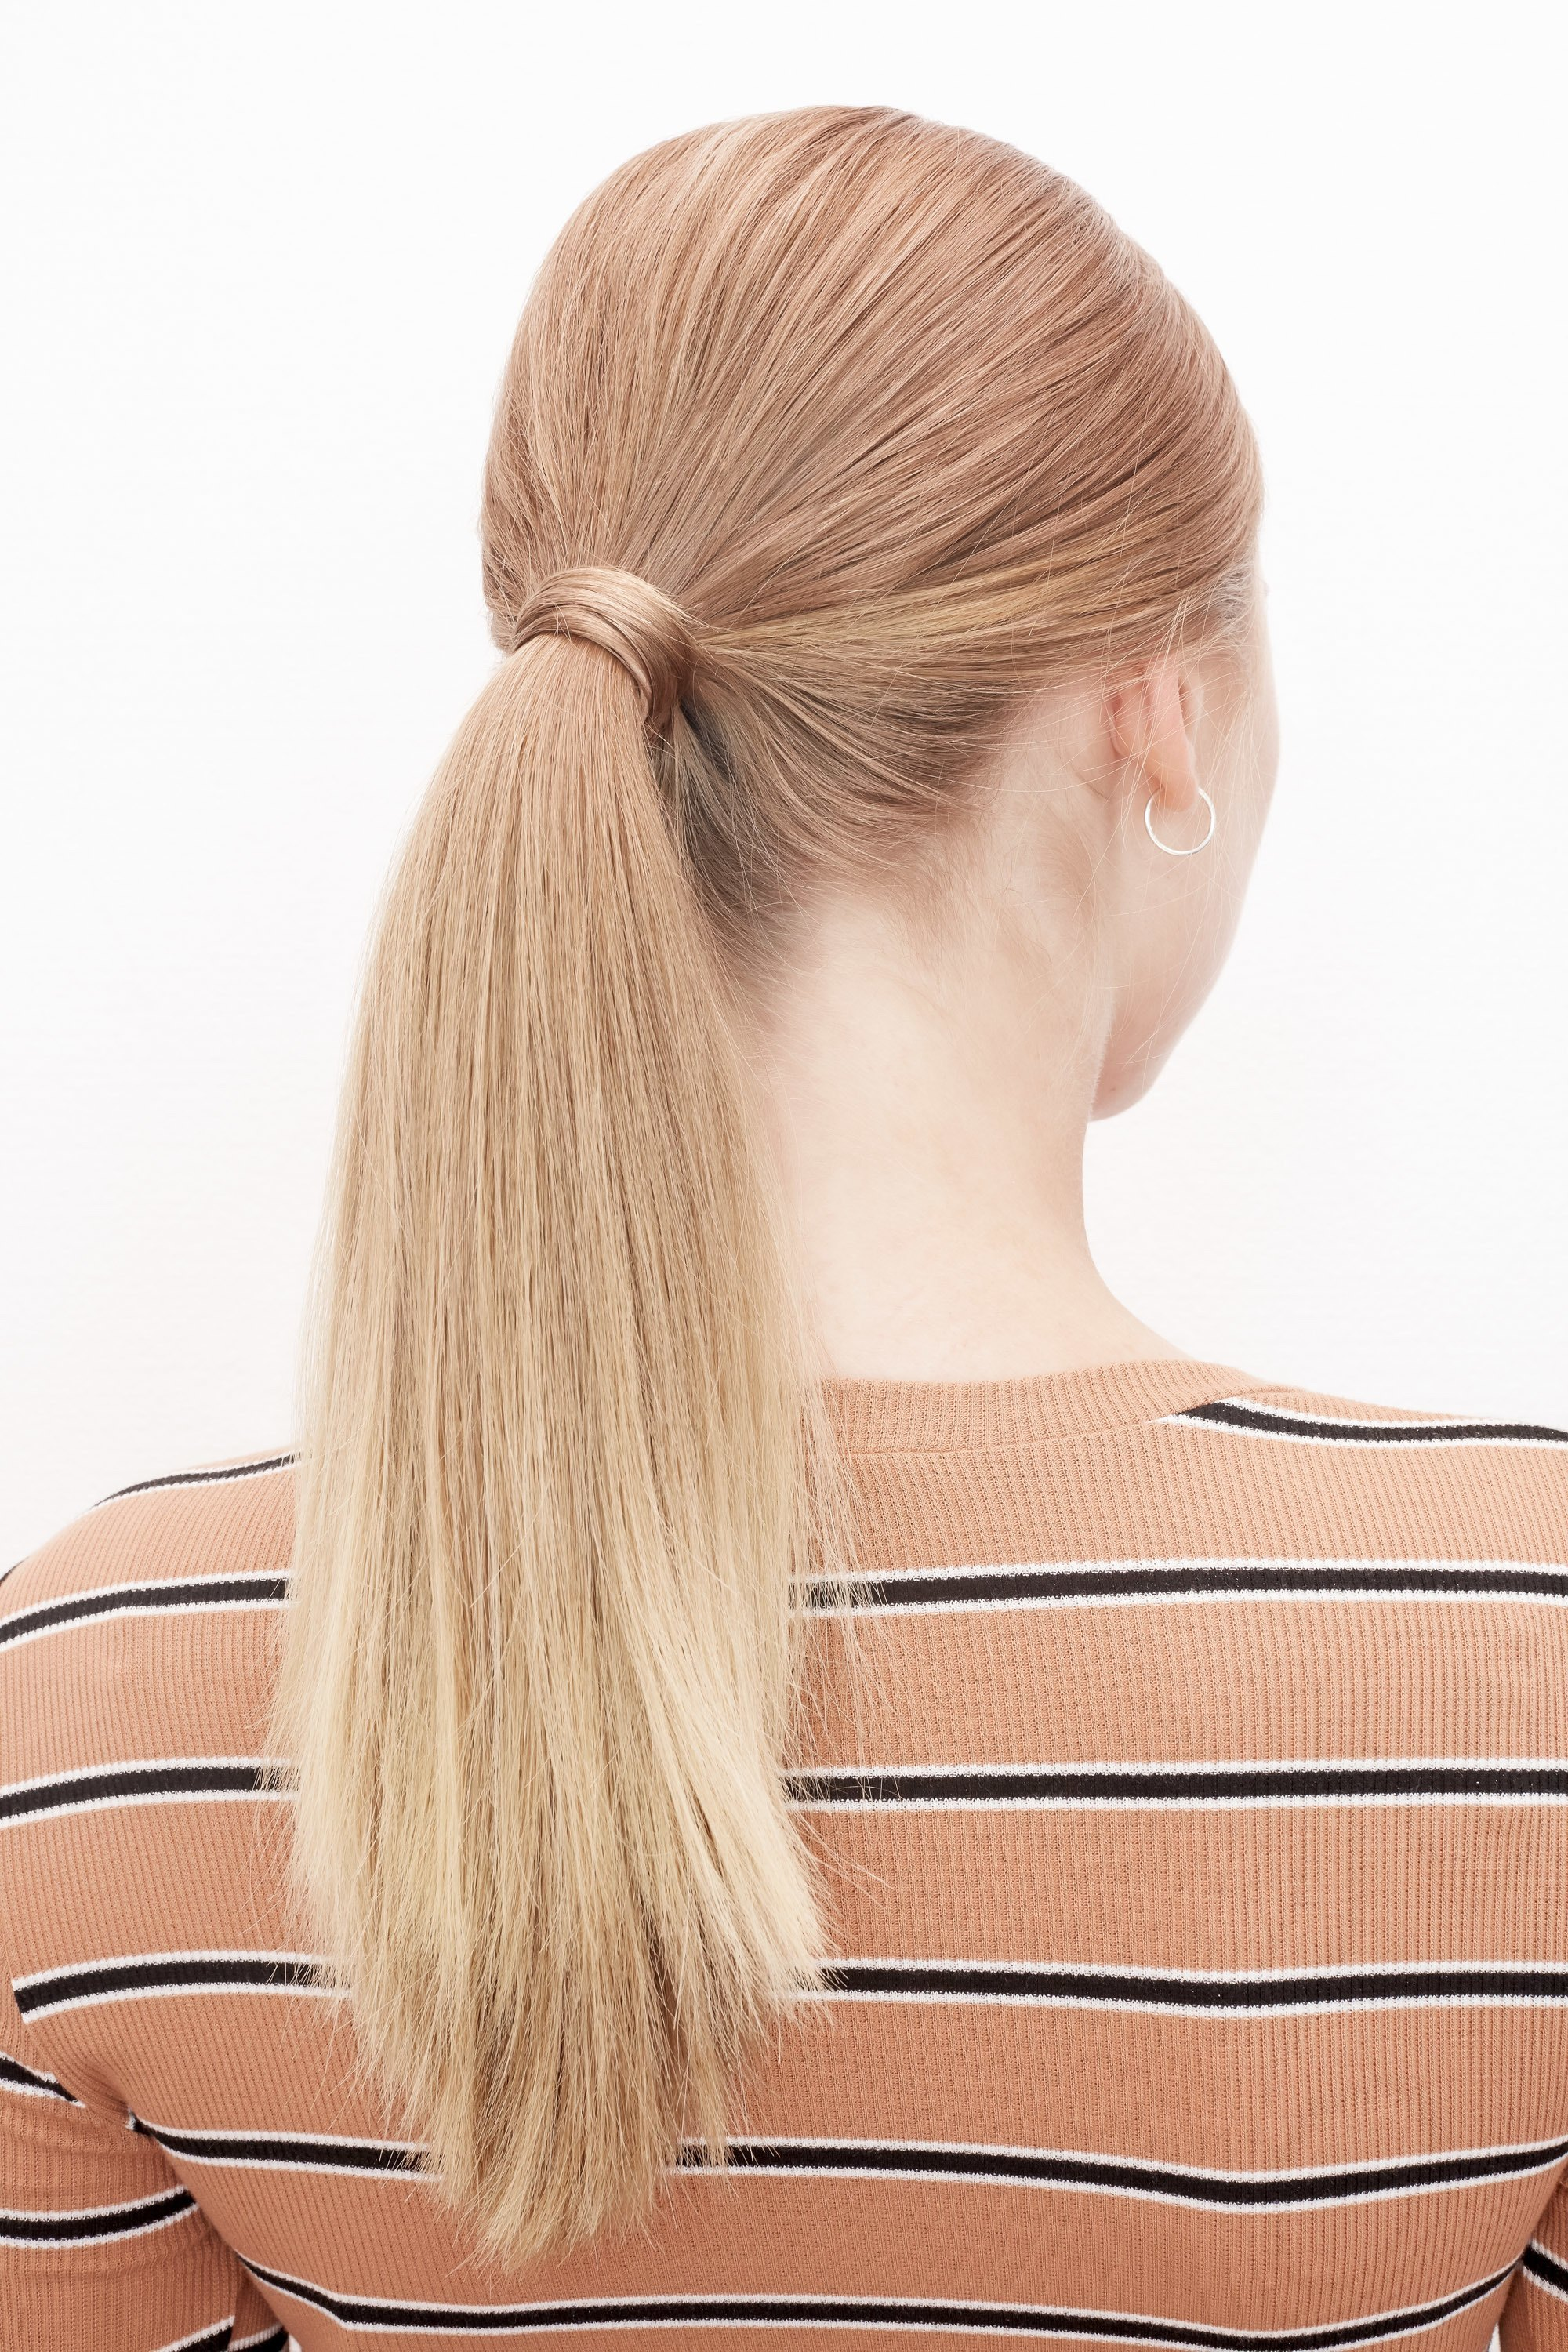 Woman with classic low ponytail hairstyle